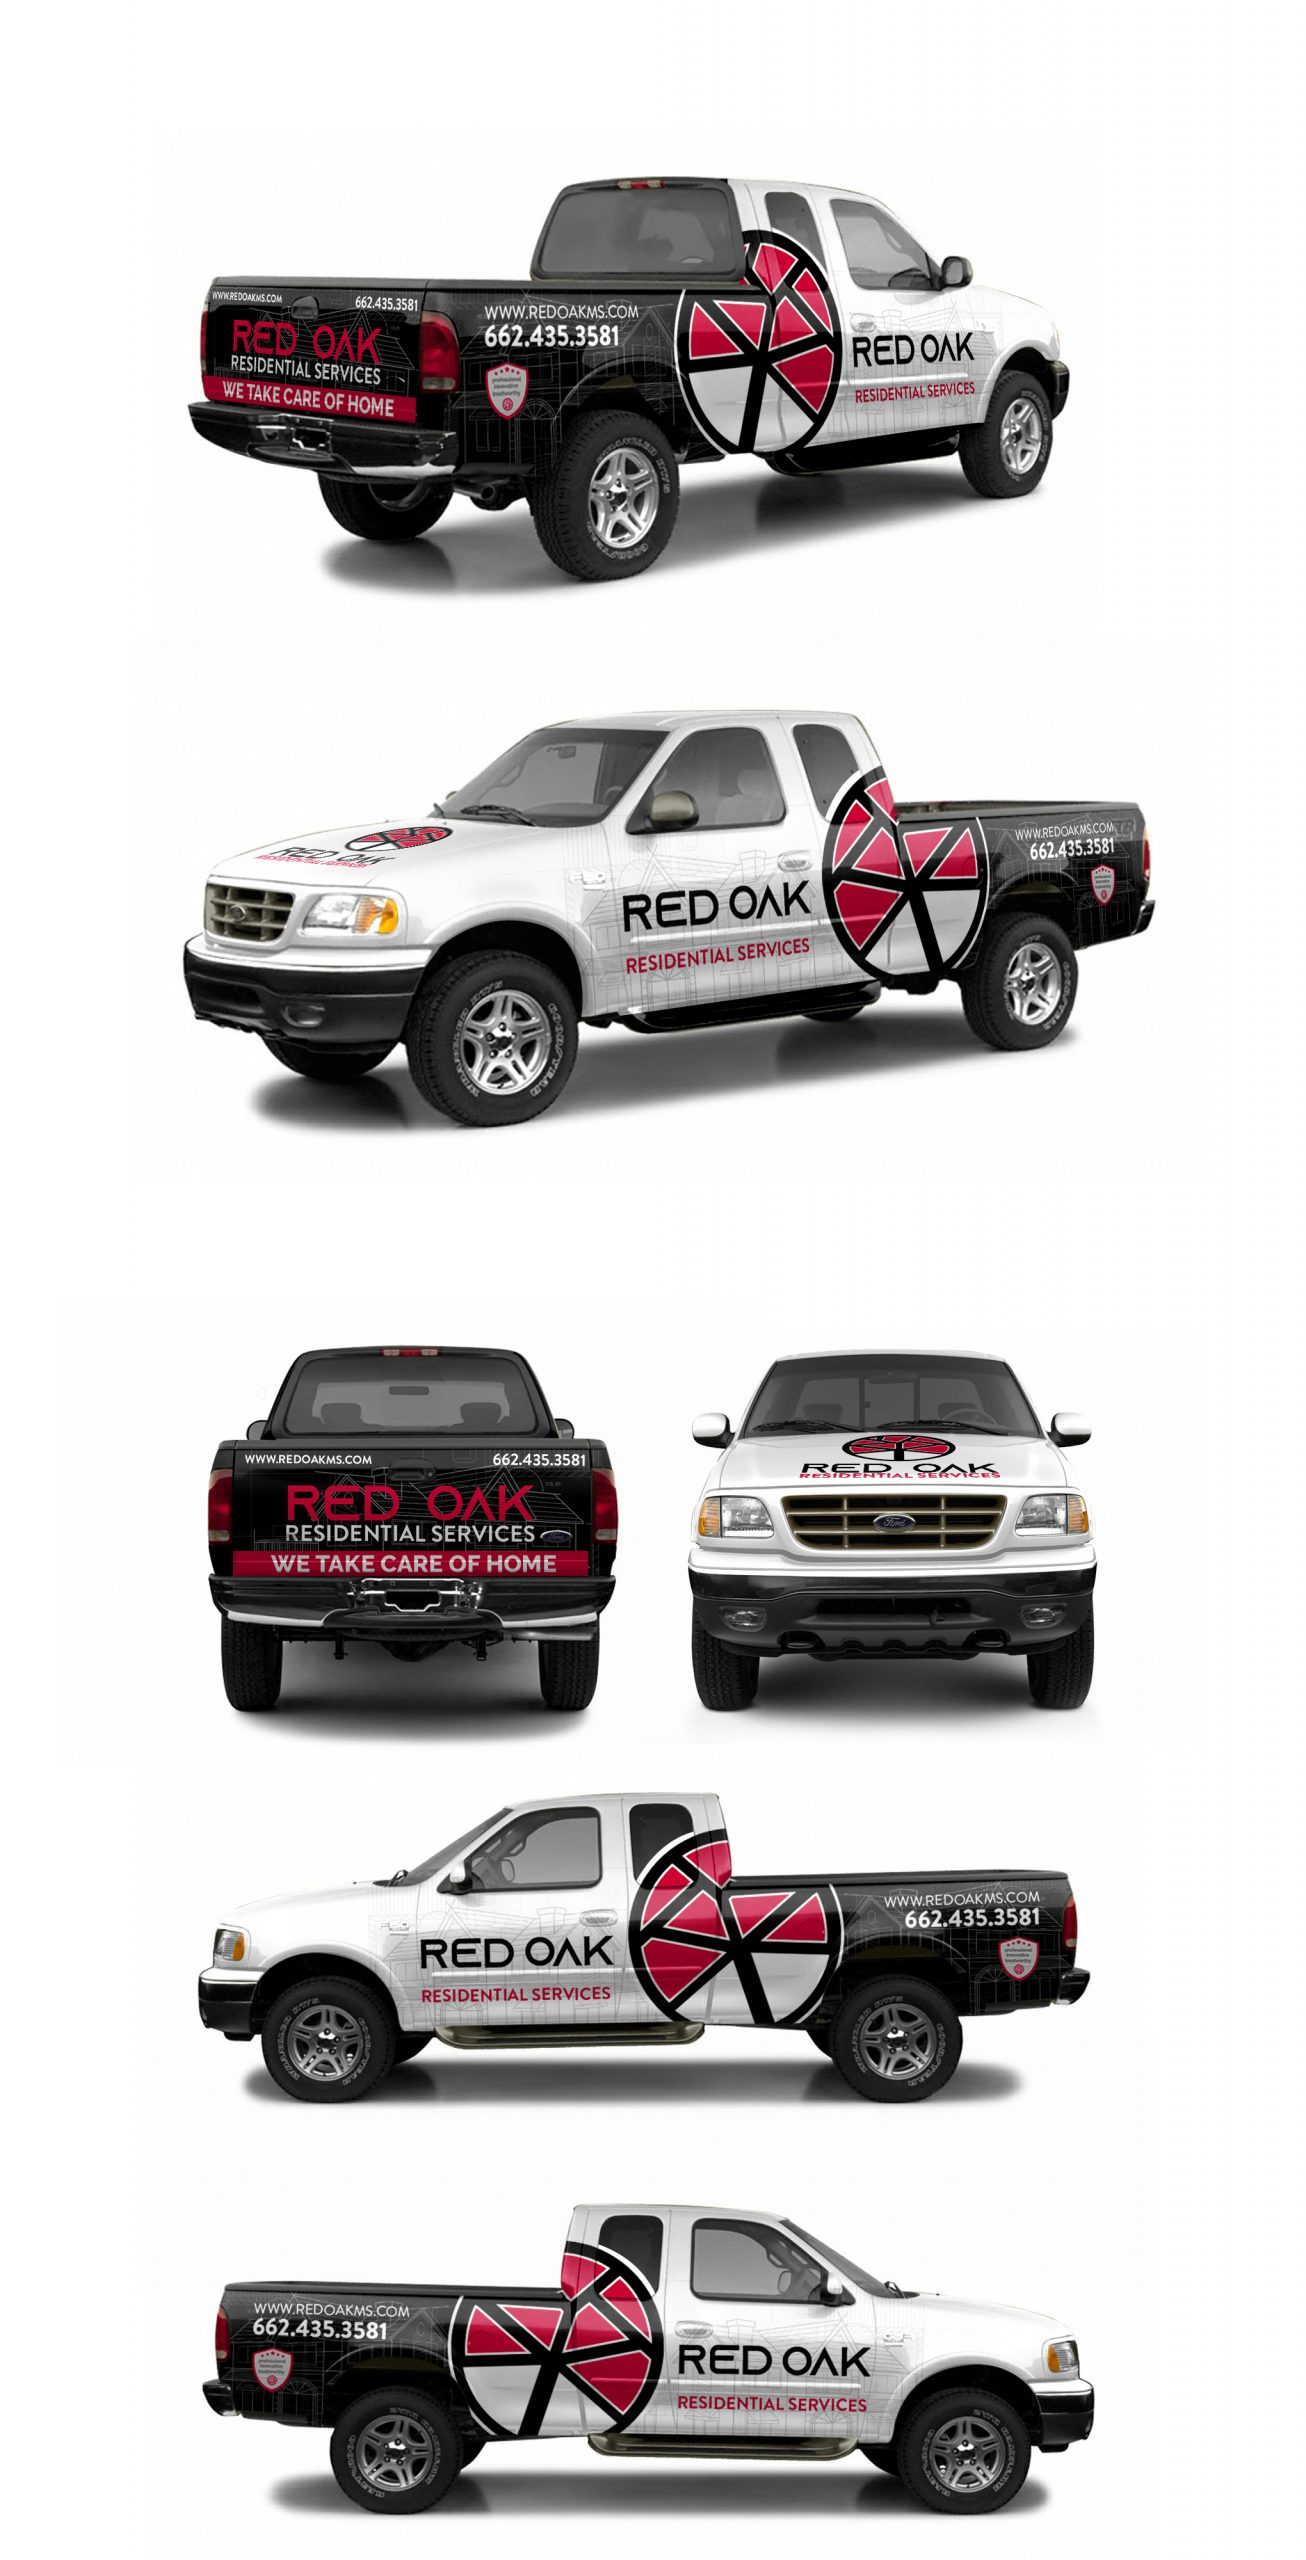 Red Oak Residential Services 2003 F150 wrap mockup